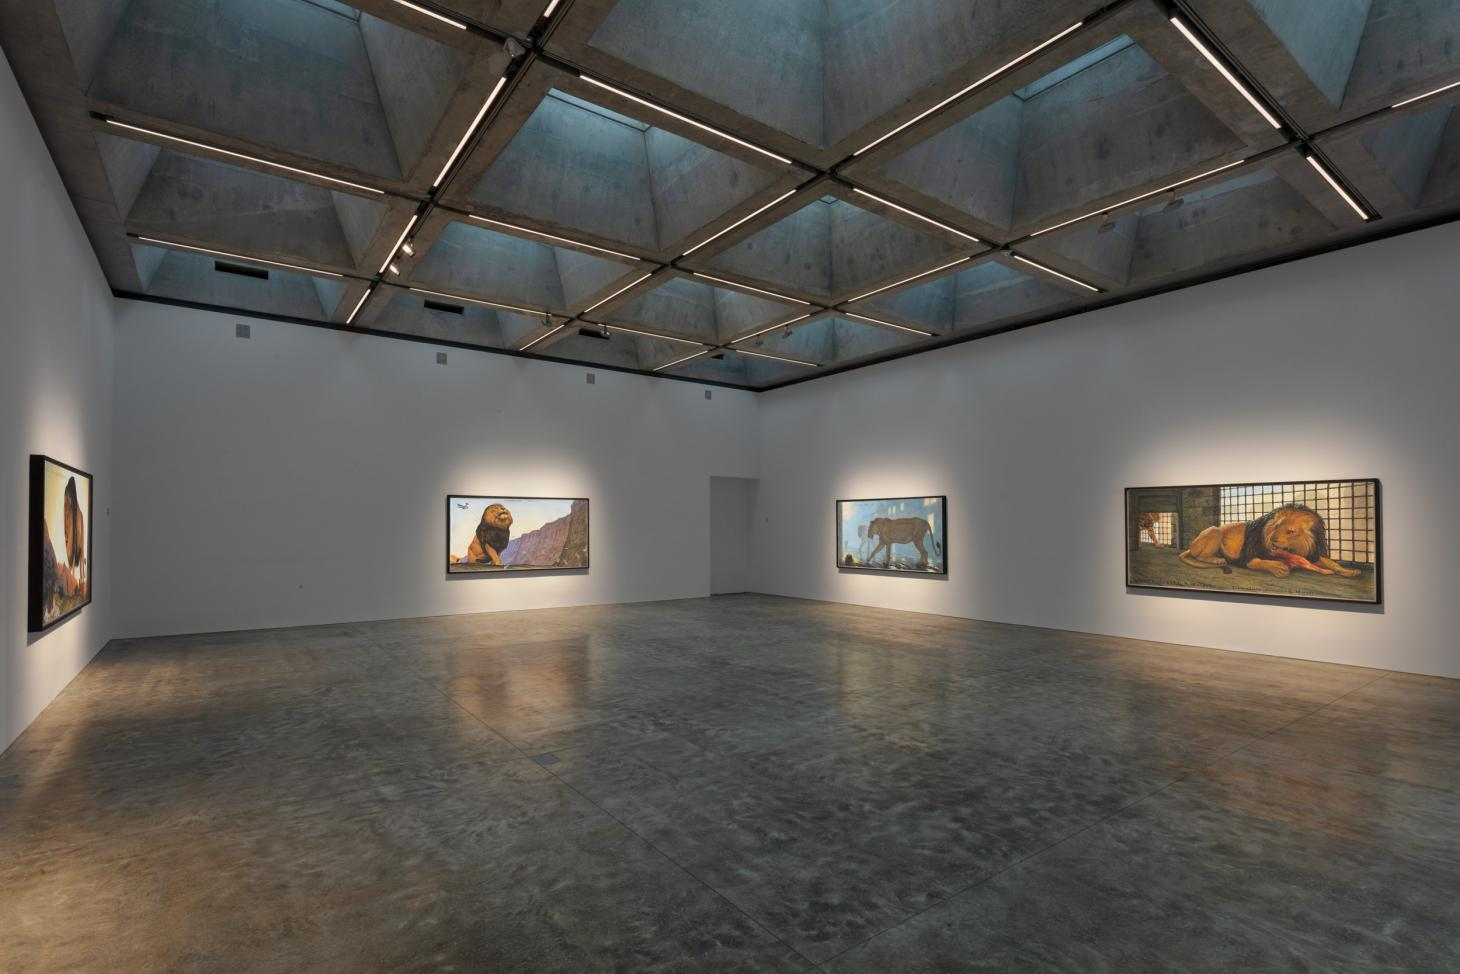 Almost 7m High Walls Also Ensure That The Galleryu0027s Large Scale Works Are  Given The Room That They Need, Which The Opening Exhibition Of Walton Ford  ...